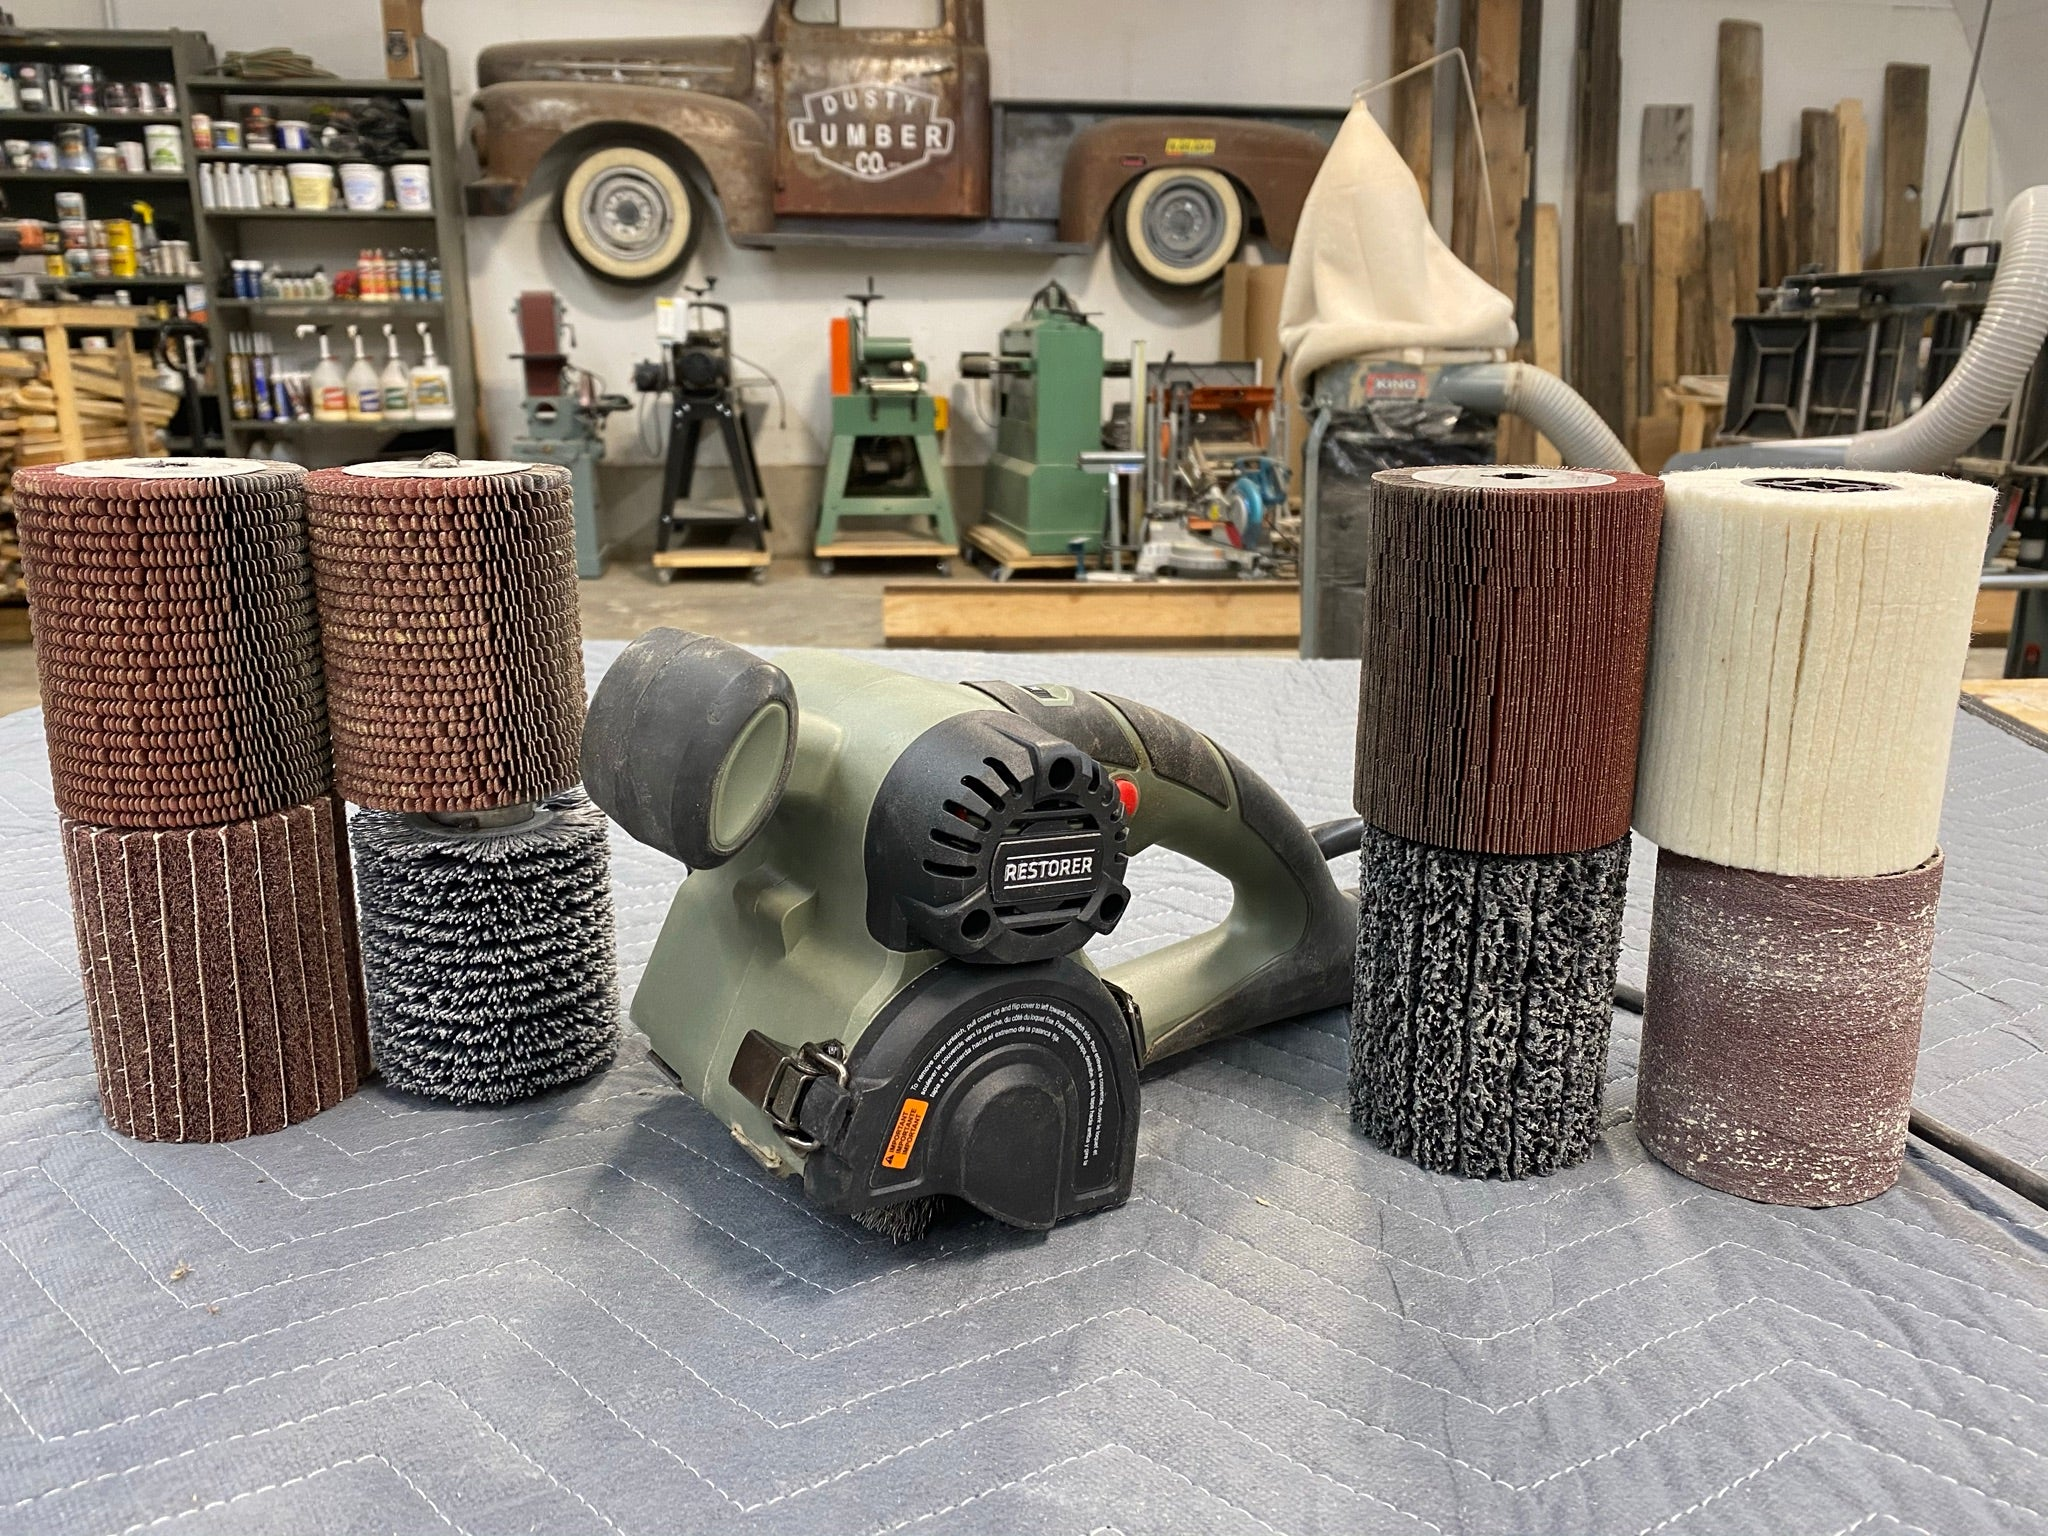 Restorer and woodworking brushes